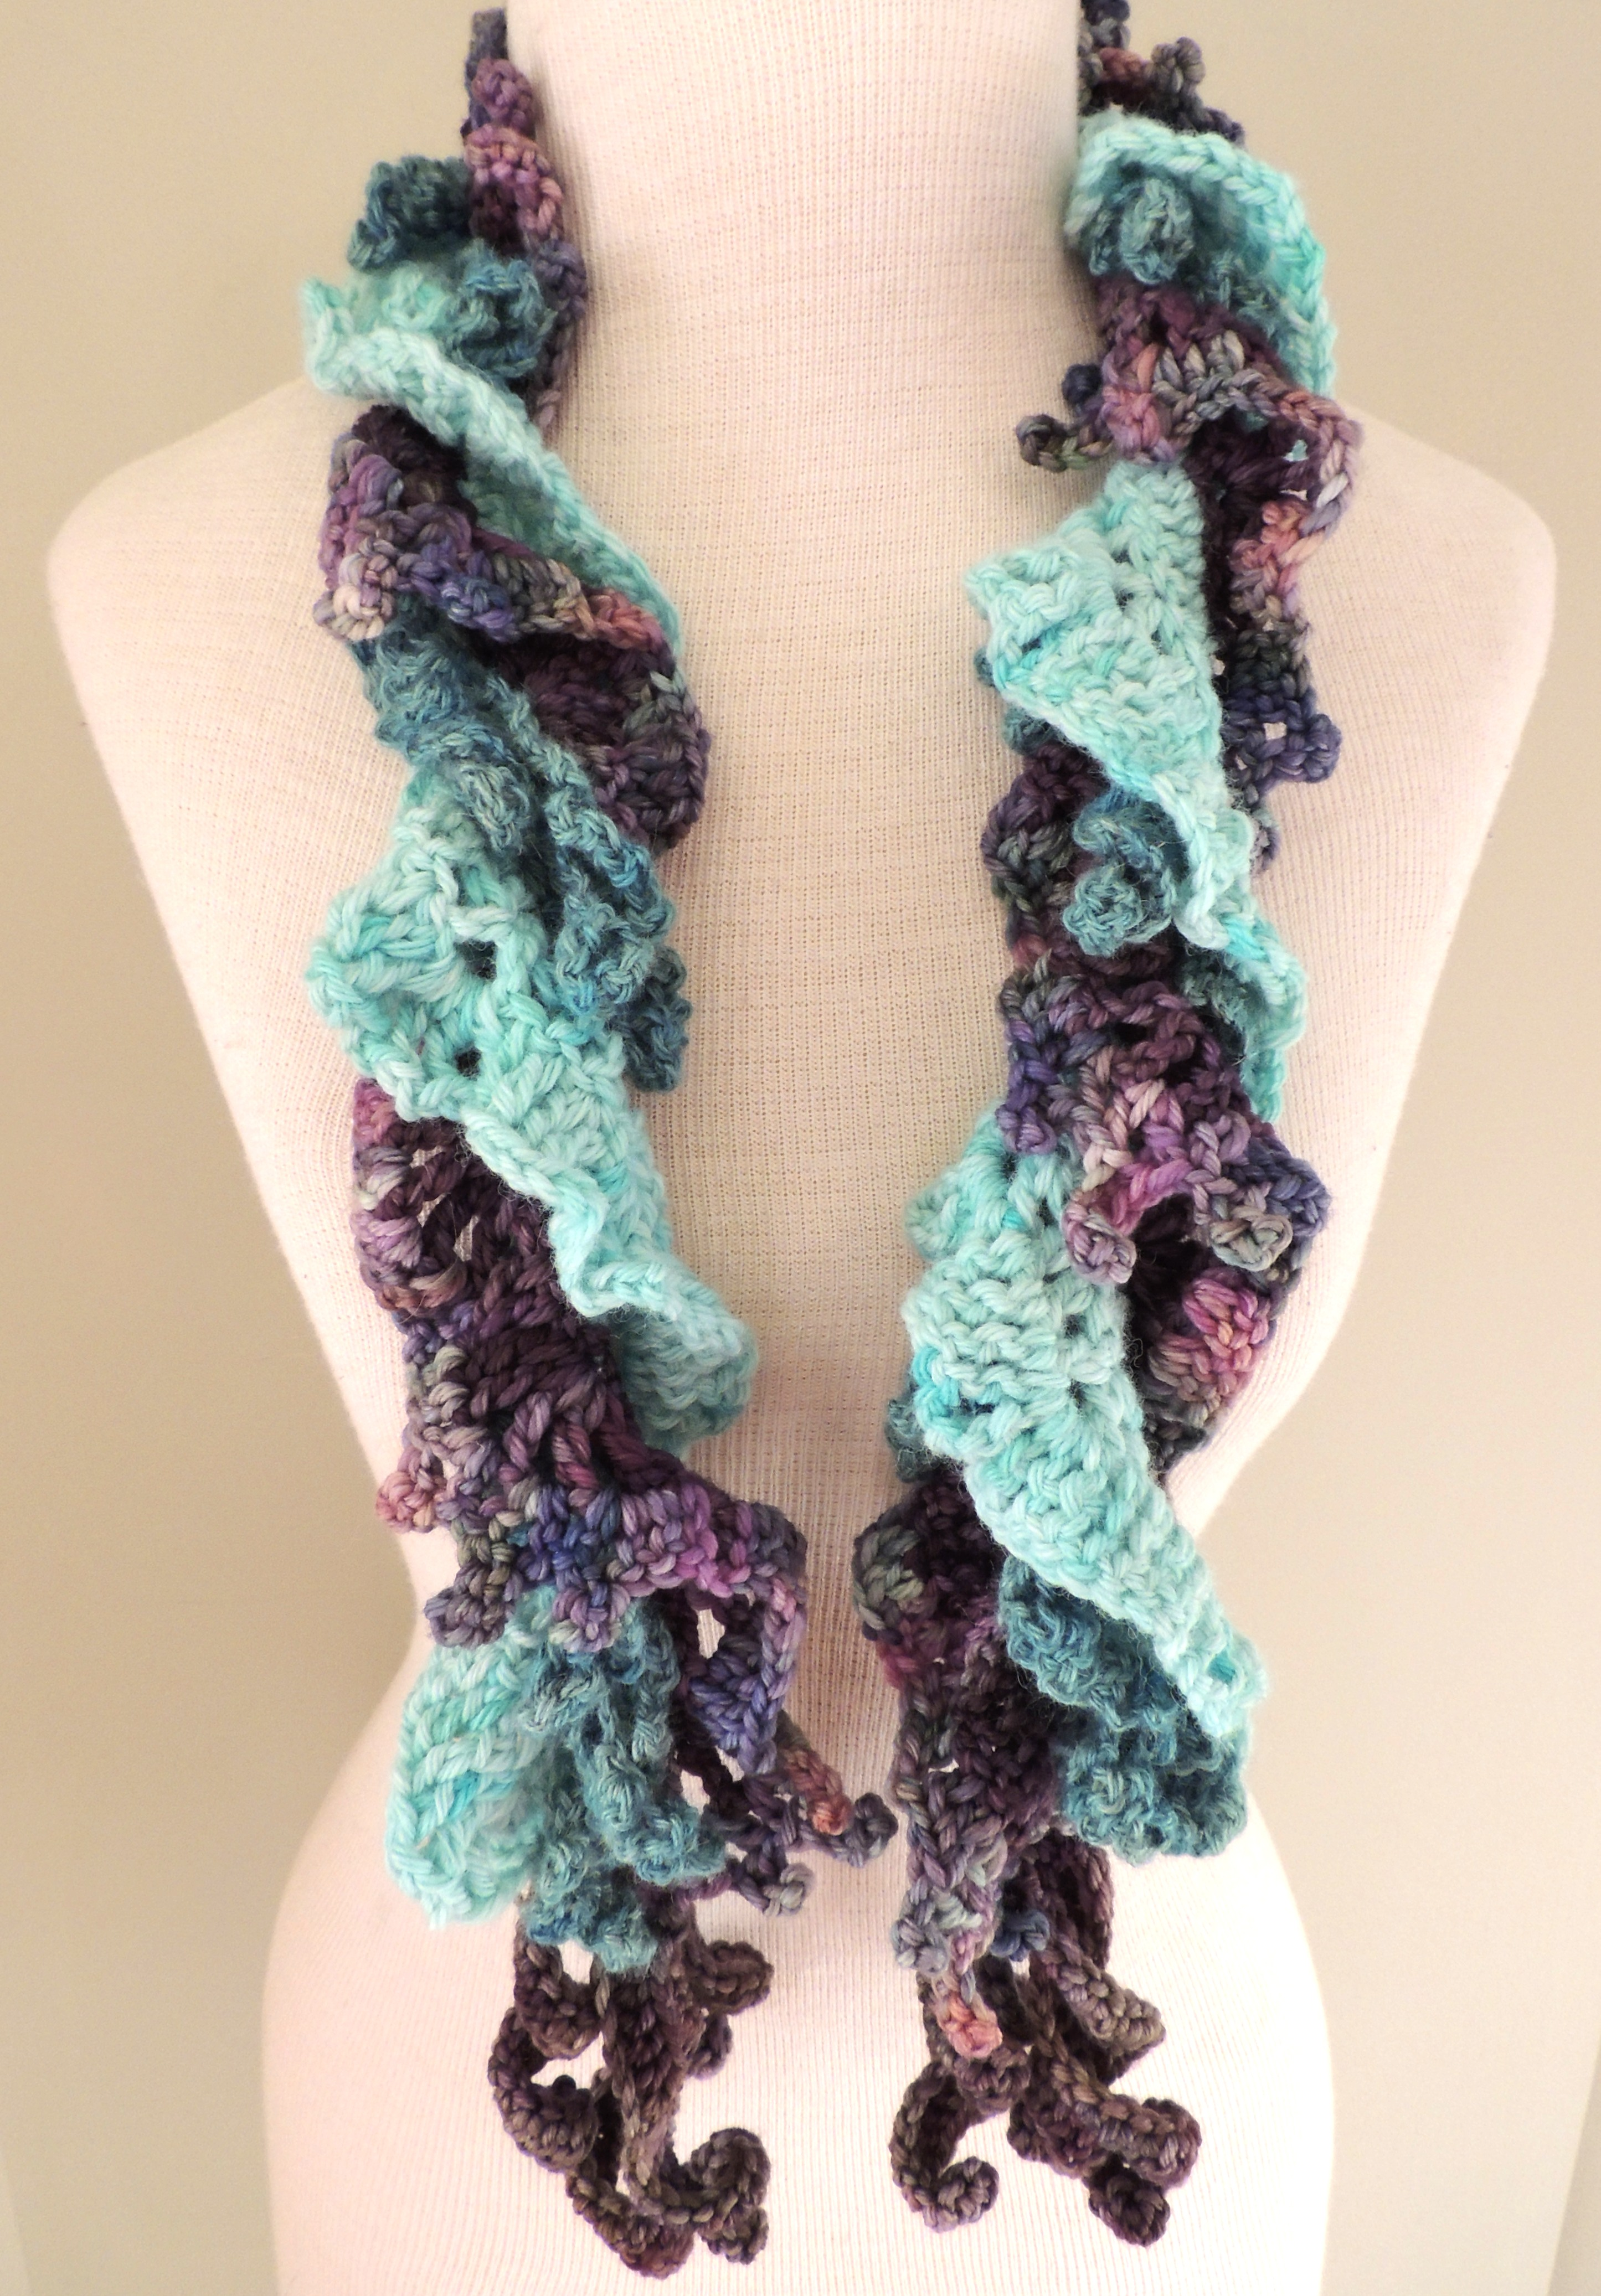 Knitting Pattern For Waterfall Scarf : Waterfall Serenity?Waterfall scarf   Valerie Baber Designs   Intricate Knits